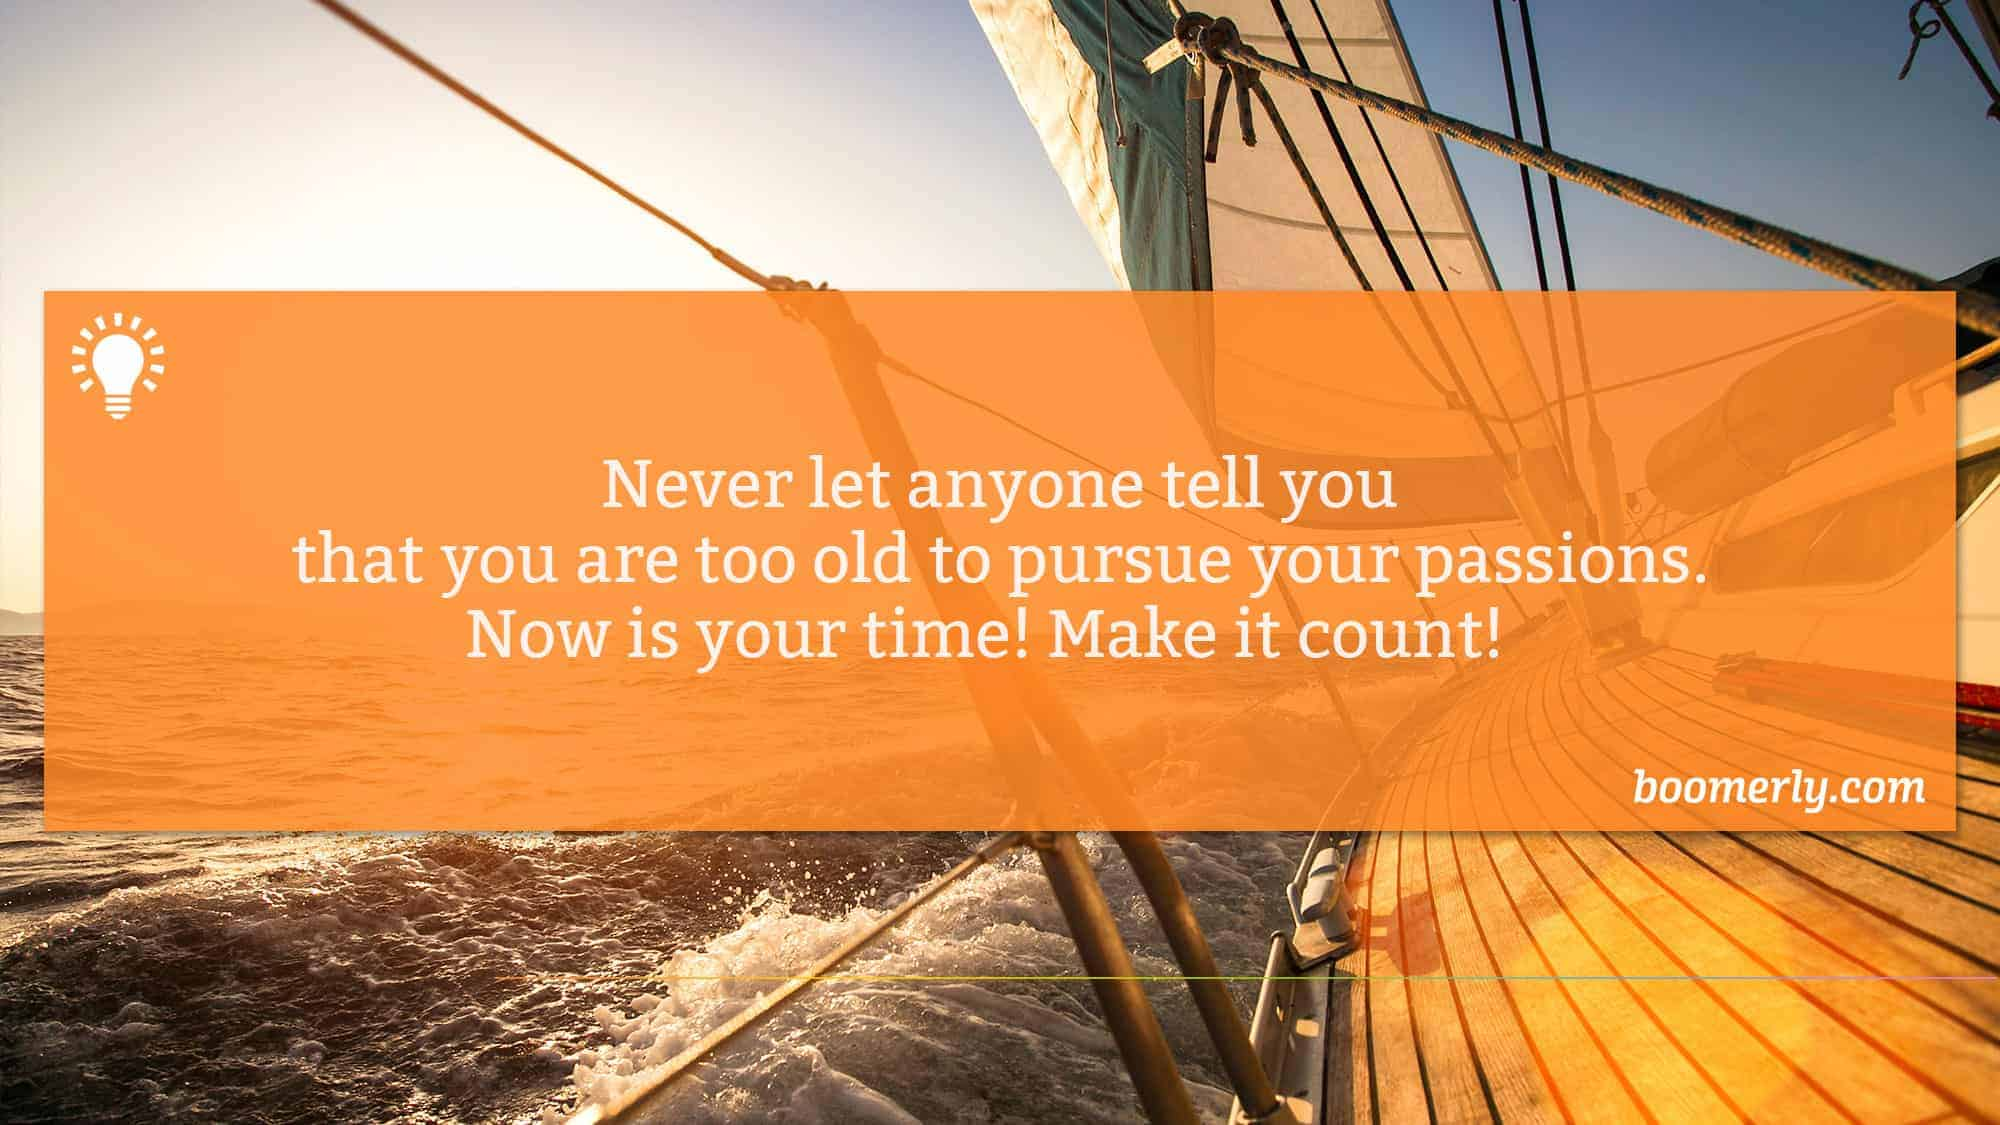 Life After 60 - Never let anyone tell you that you are too old to pursue your passions. Now is your time! Make it count!